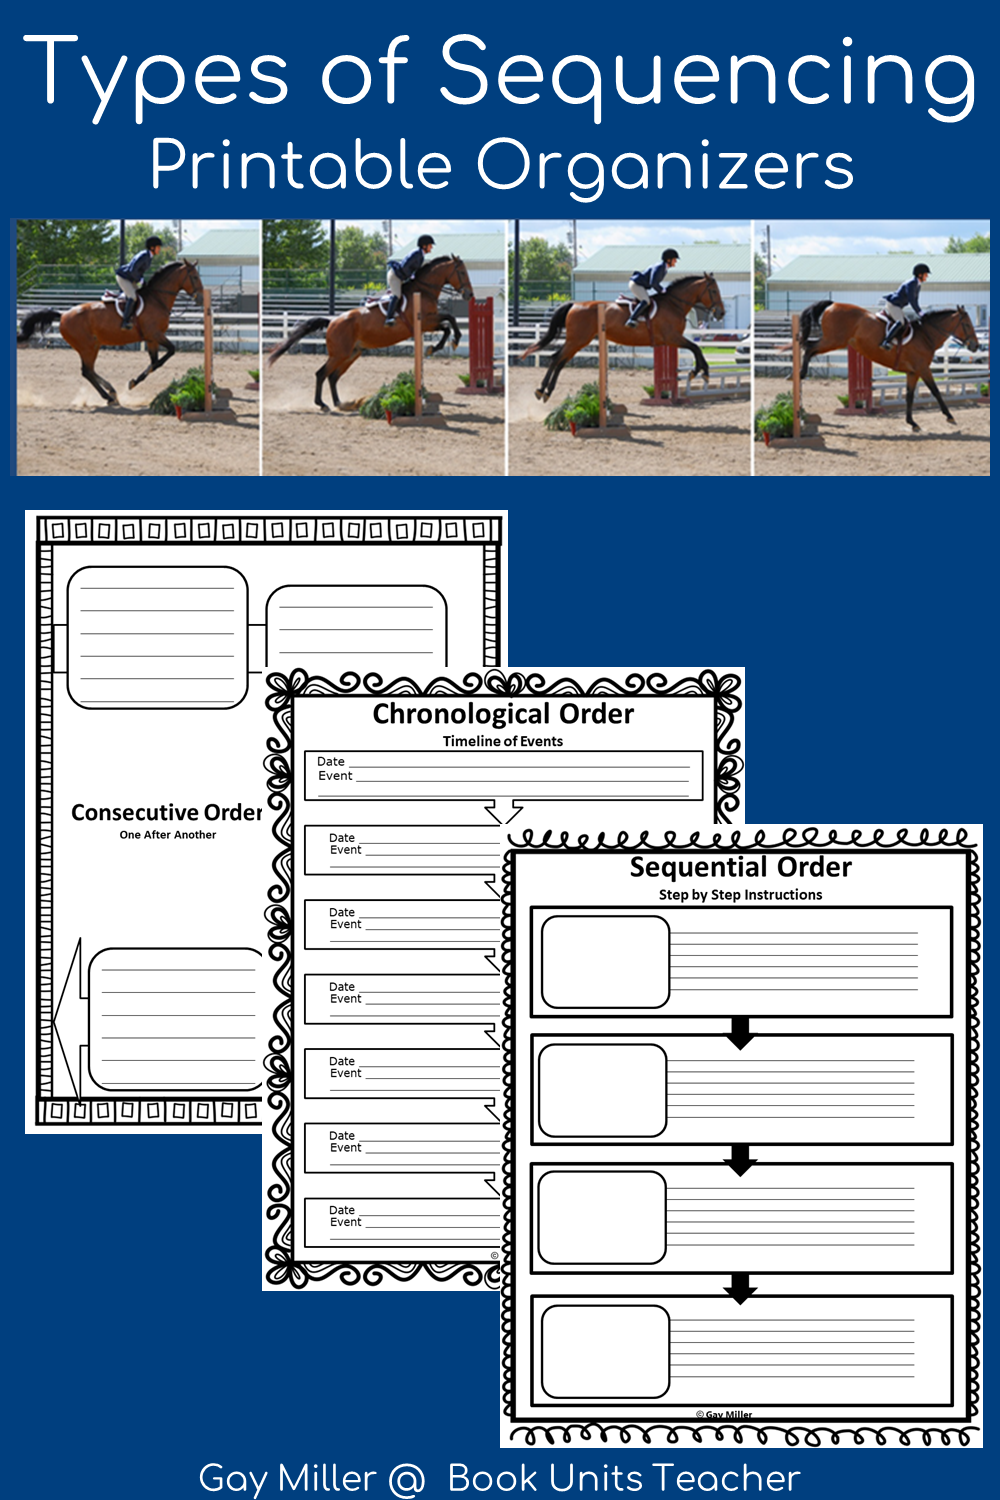 This blog post contains links to practice exercises for chronological, sequential, and consecutive order. You can also download these free graphic organizers.